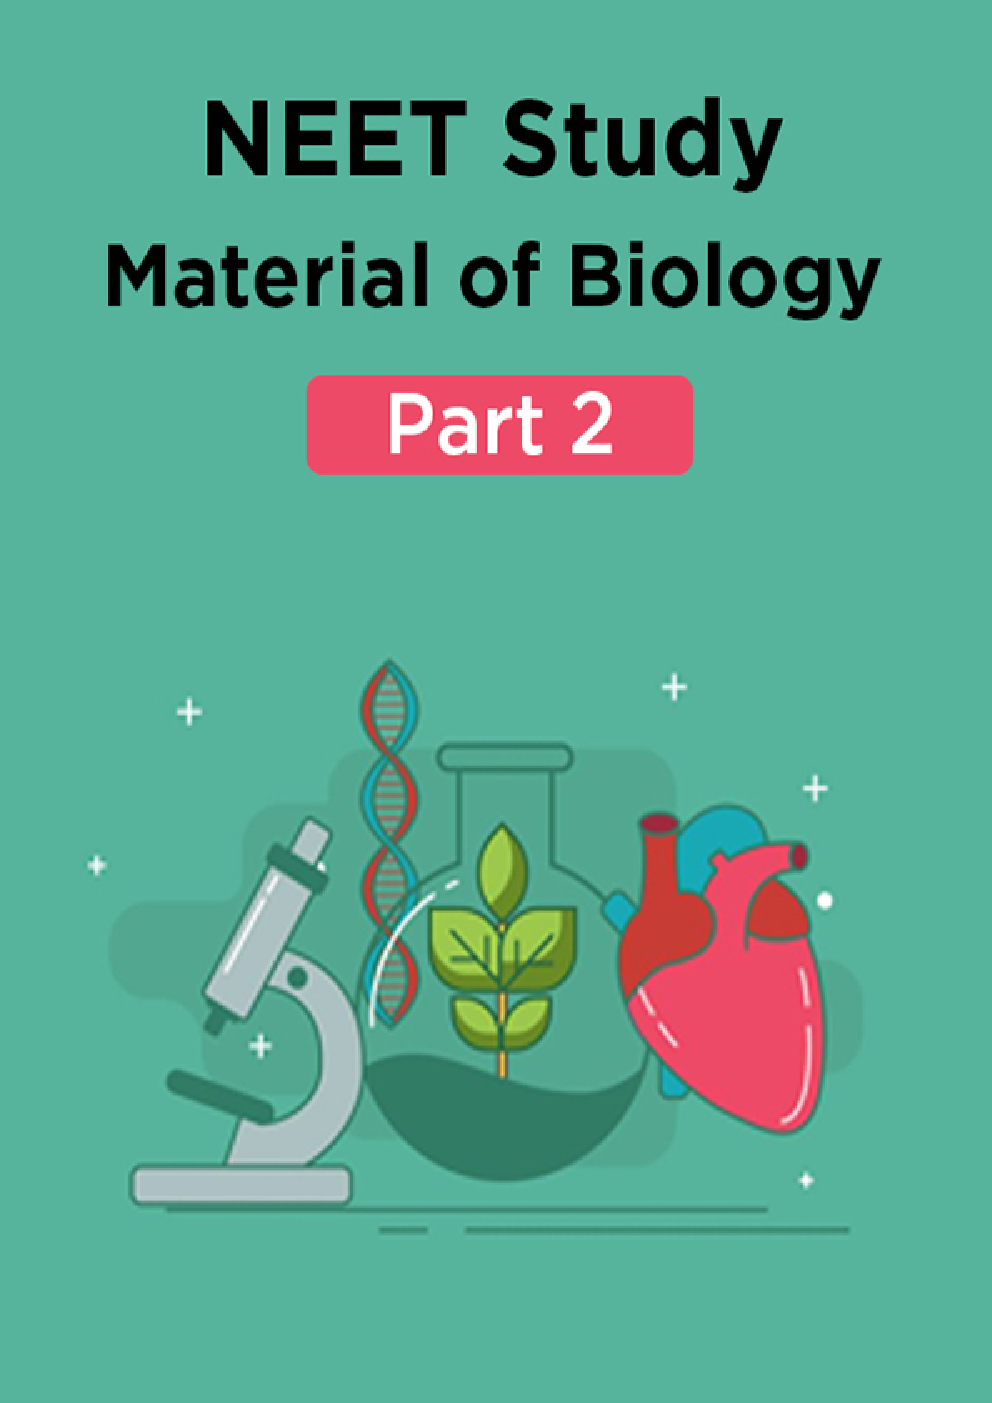 NEET Study Material Of Biology Part 2 - Page 1